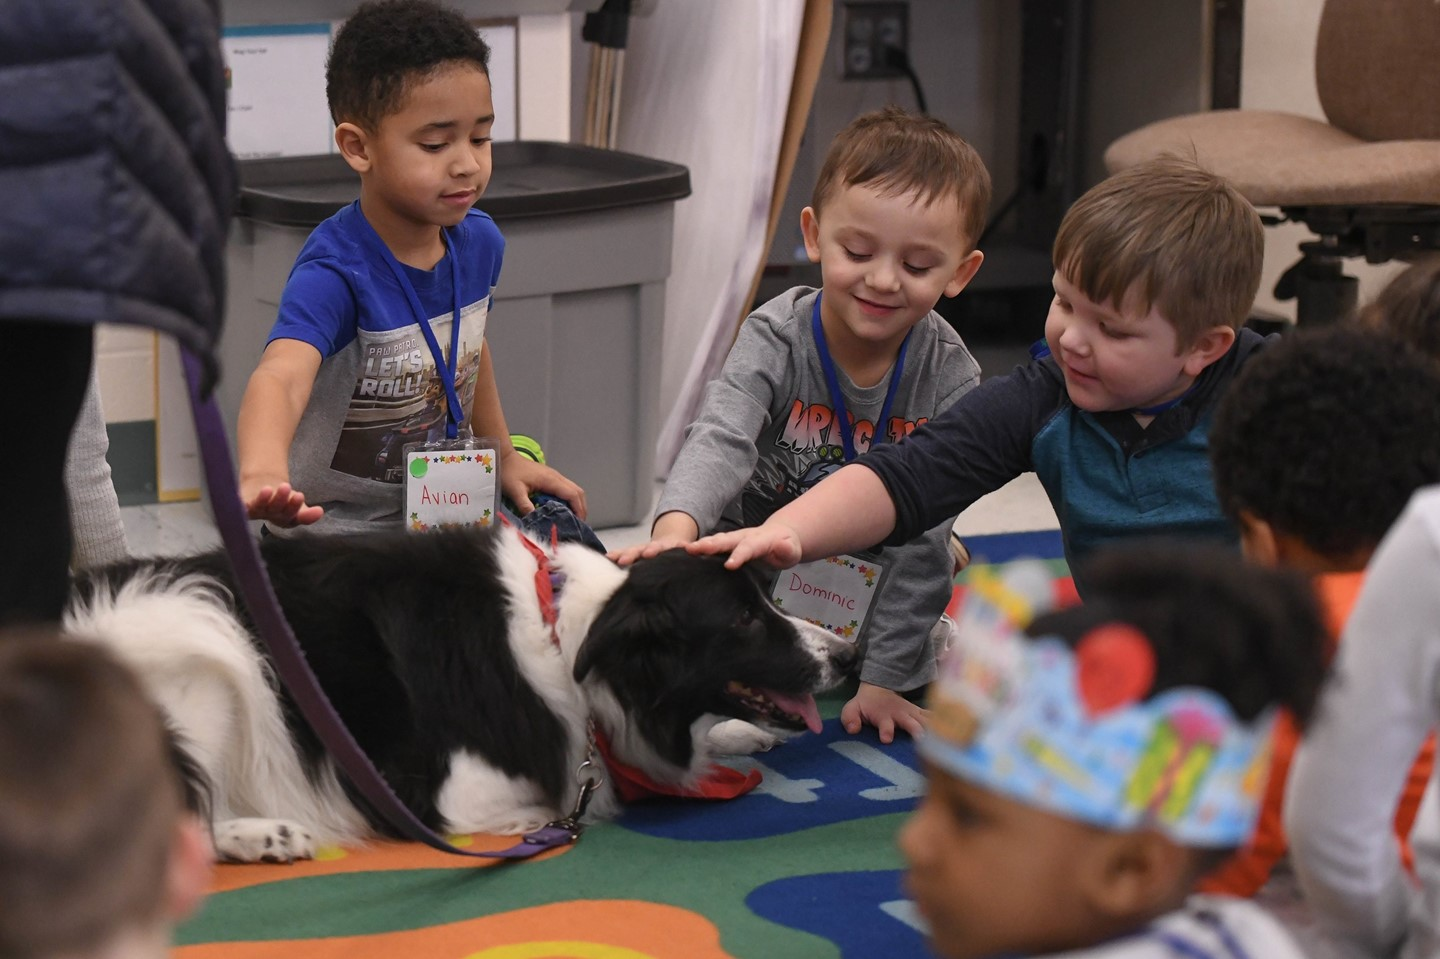 Scholars pet a therapy dog during class